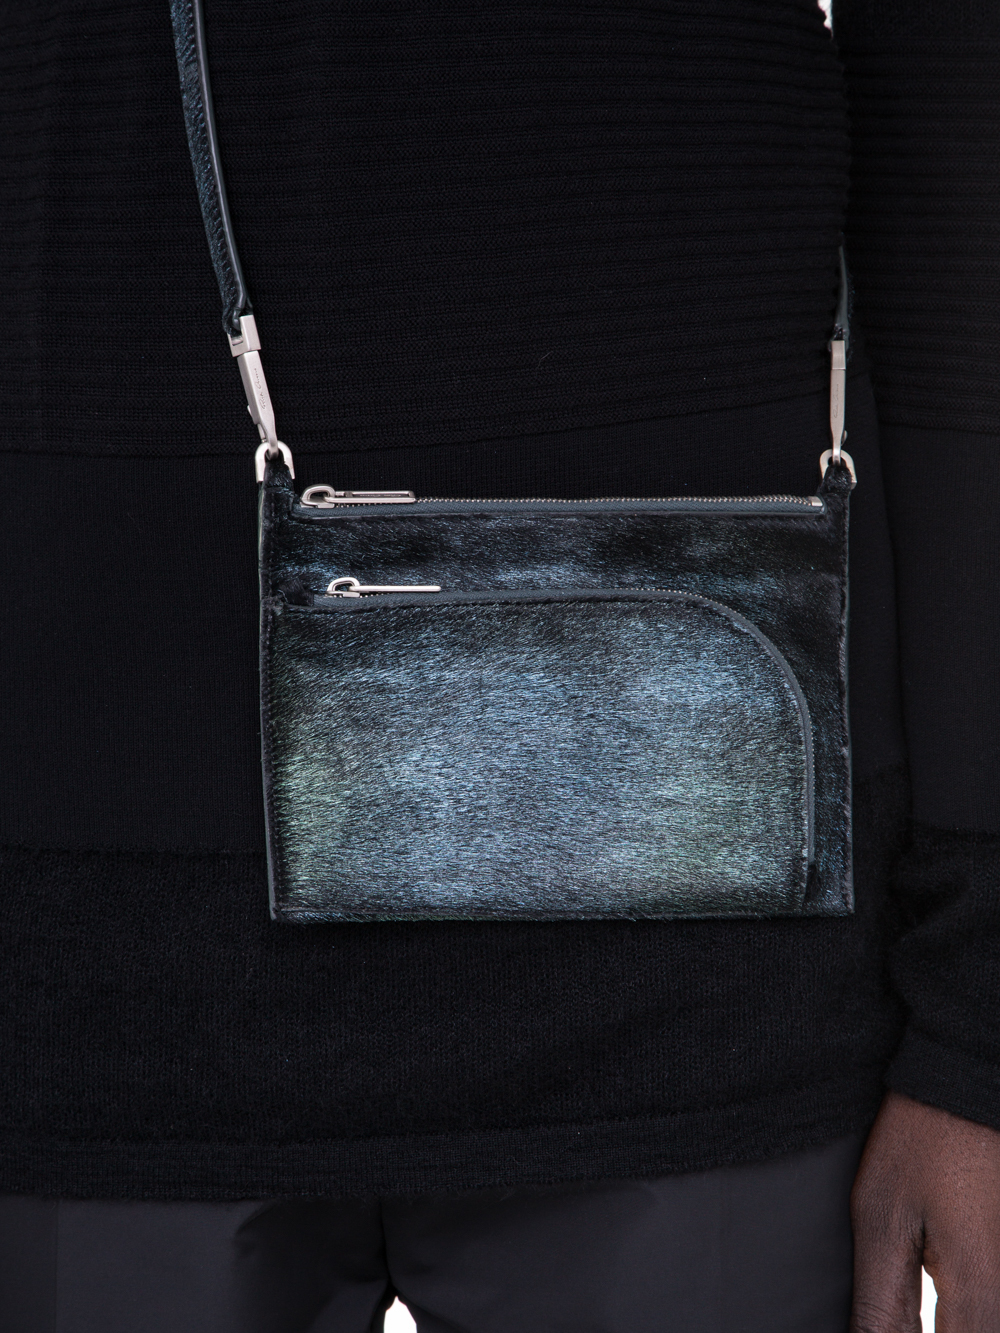 RICK OWENS SS19 BABEL CLUB POUCH IN IRIDESCENT BLUE LEATHER